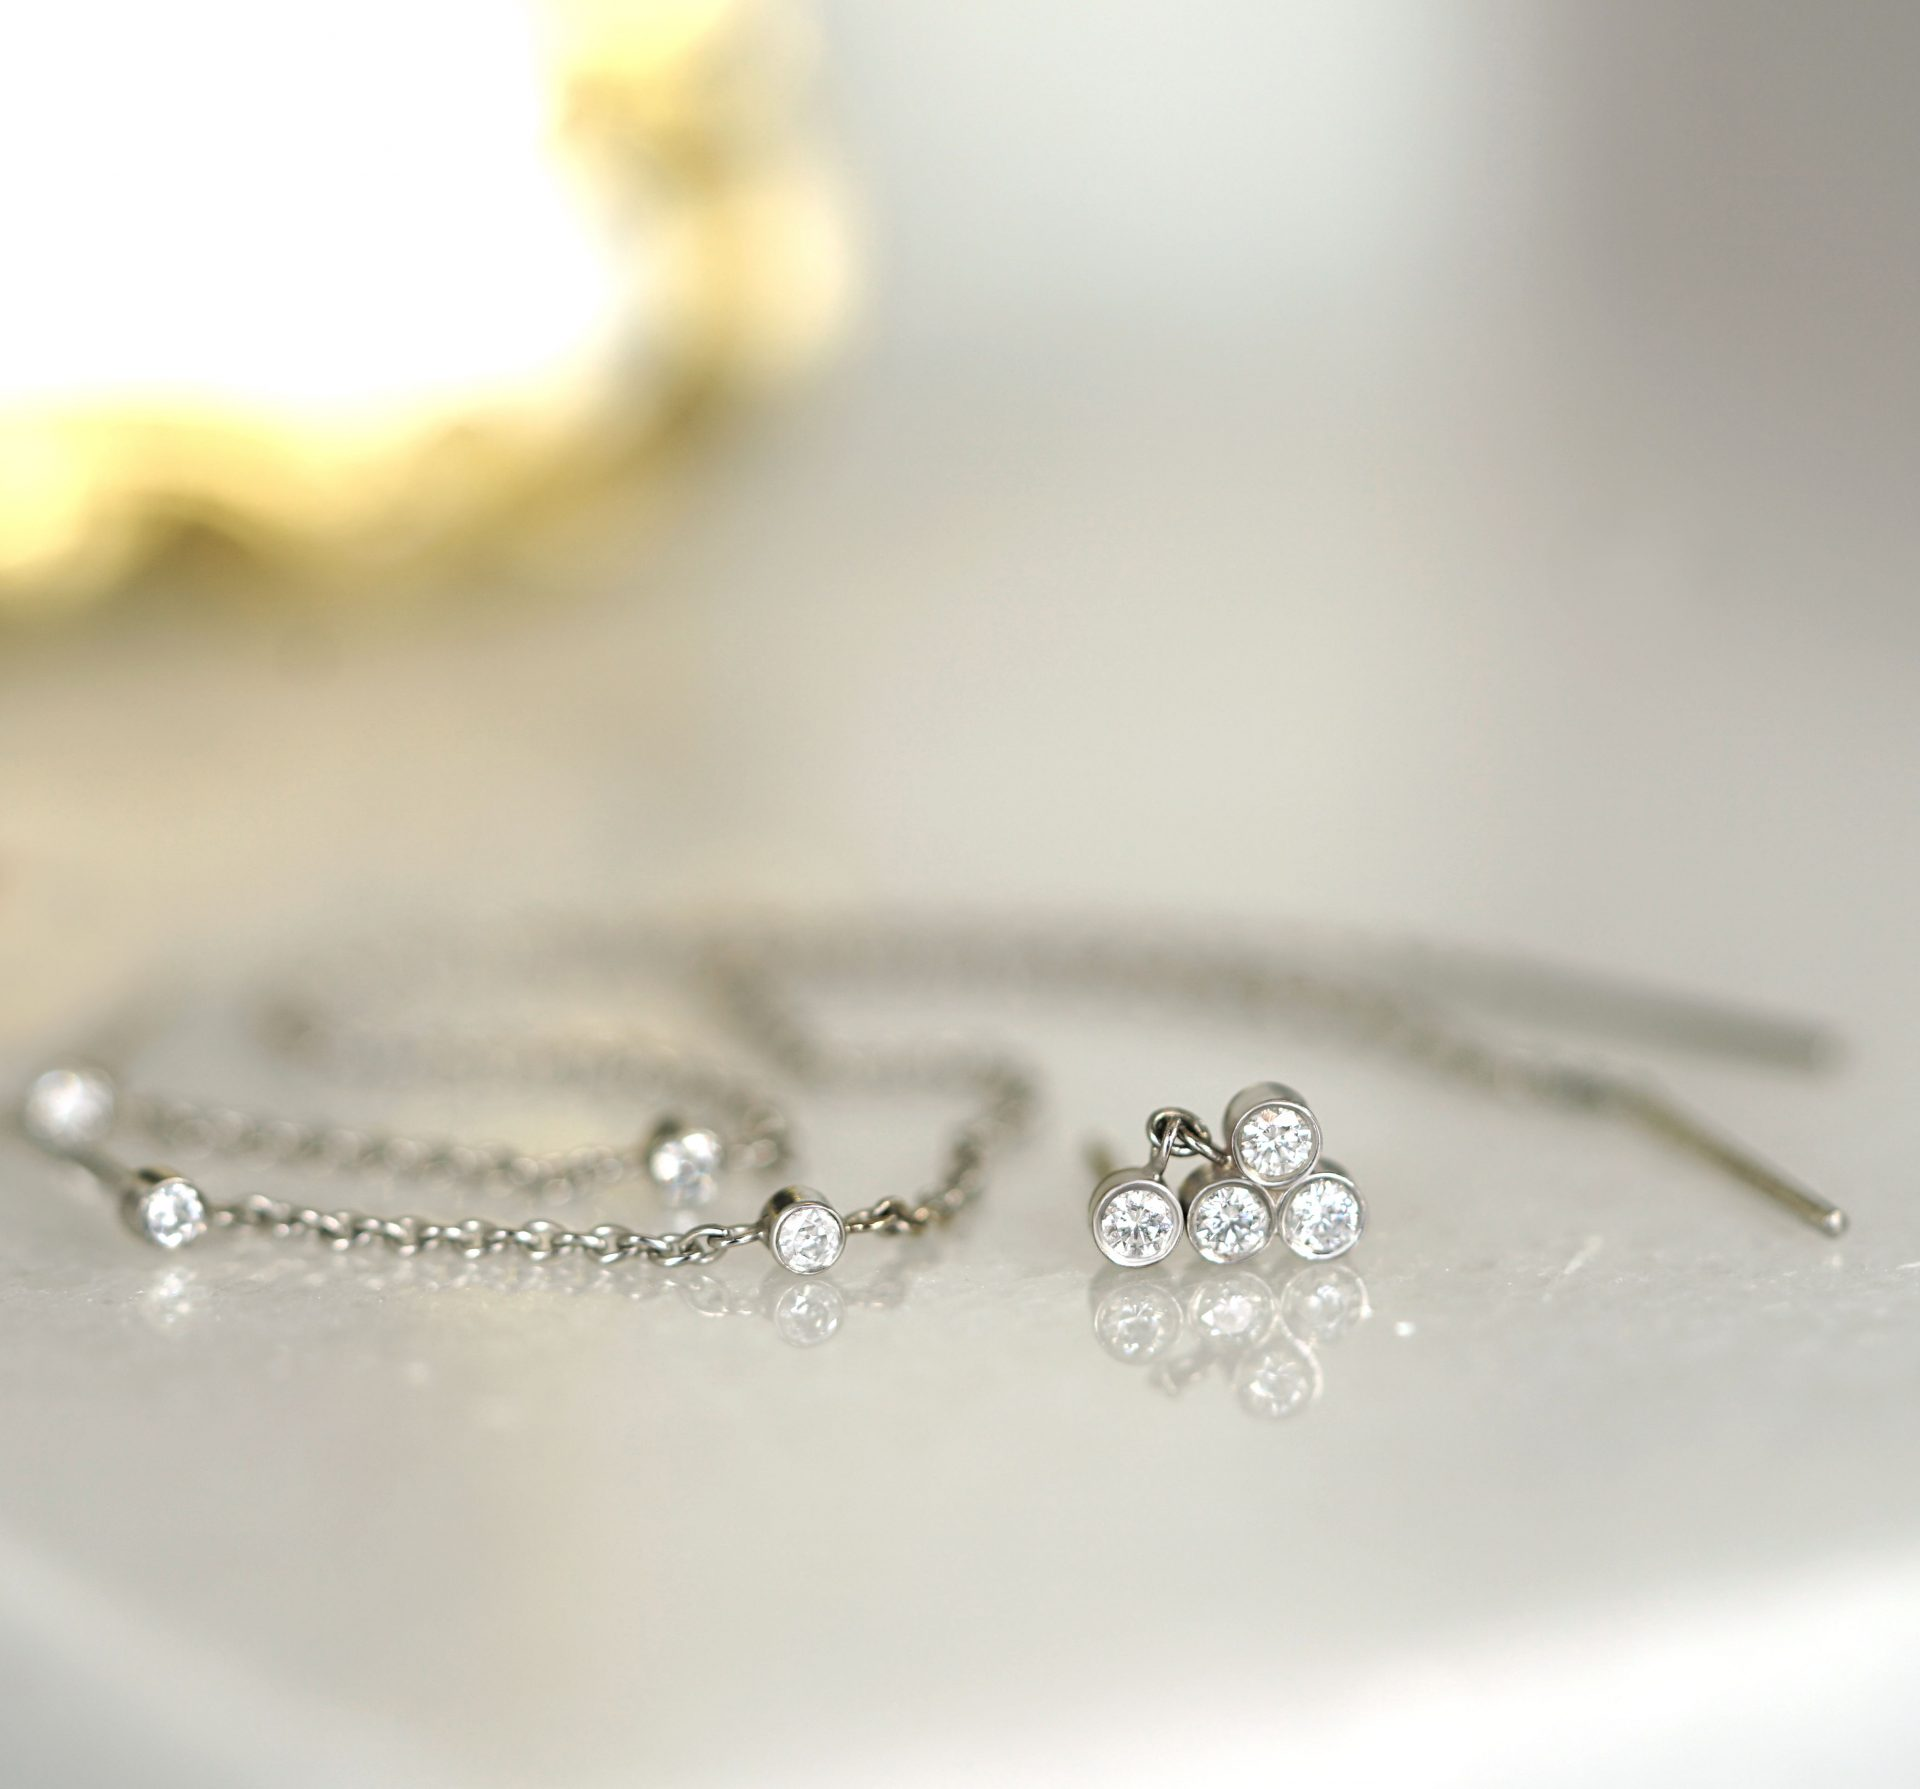 Small-Luxury-Valentines-Day-Gifts-for-Her-18k-Solid-Gold-Piercing-Earrings-Set-Price-Lena-Cohen